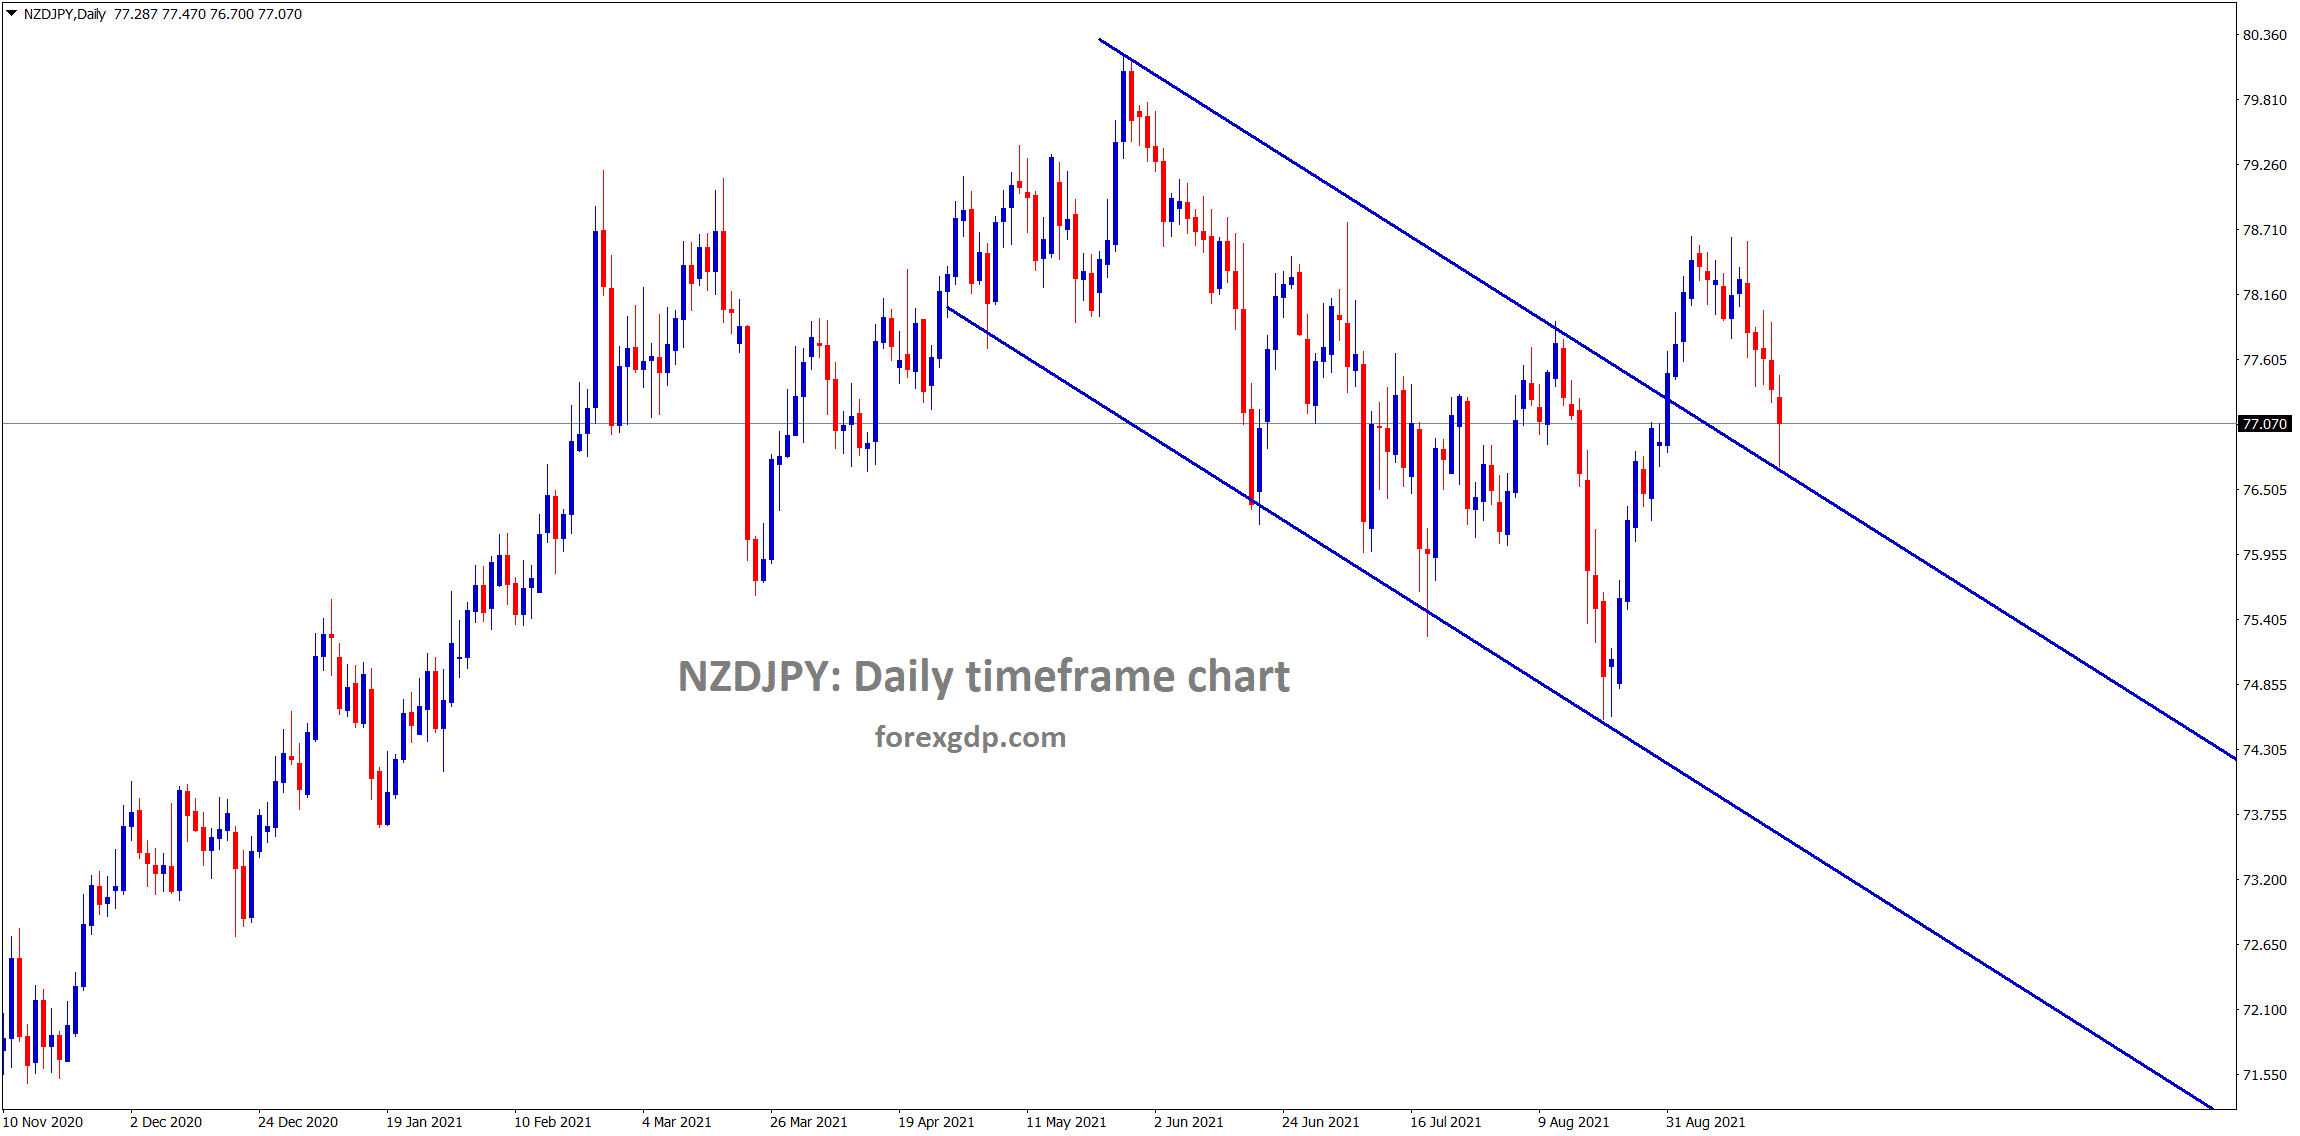 NZDJPY came to the retest zone of the broken descending channel